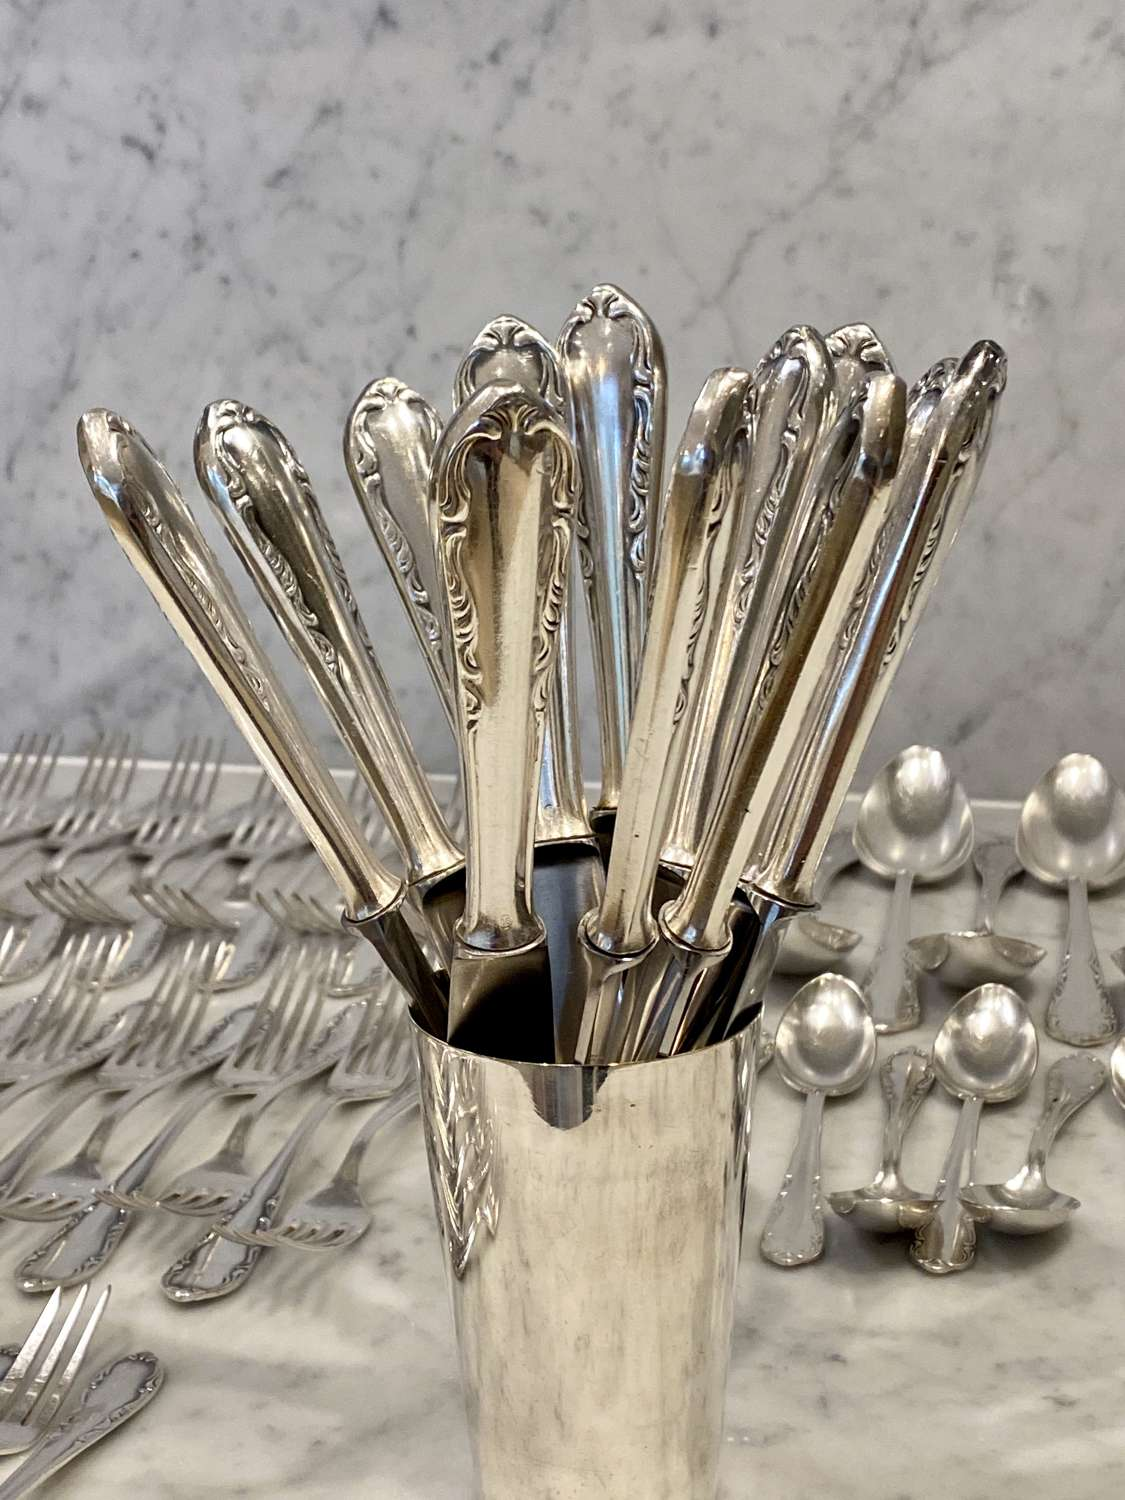 Full set of Art Deco silver plated cutlery for 12 people